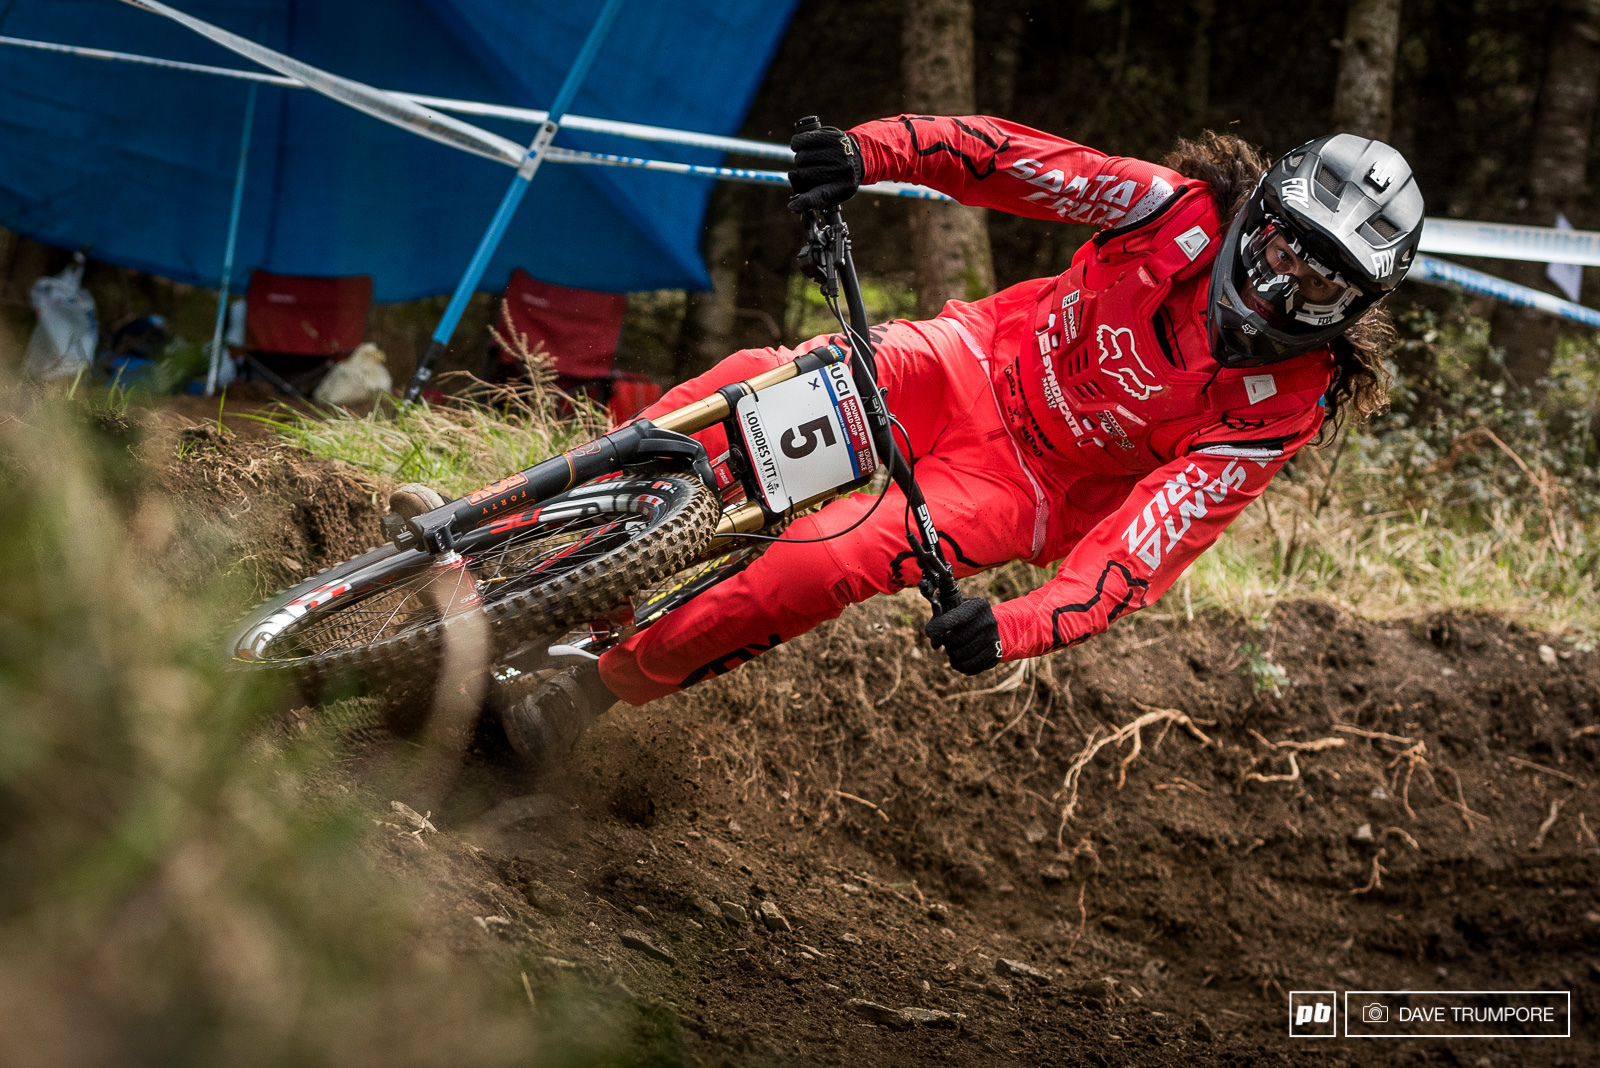 Fit fast and confident... The Rat is on form in Lourdes.